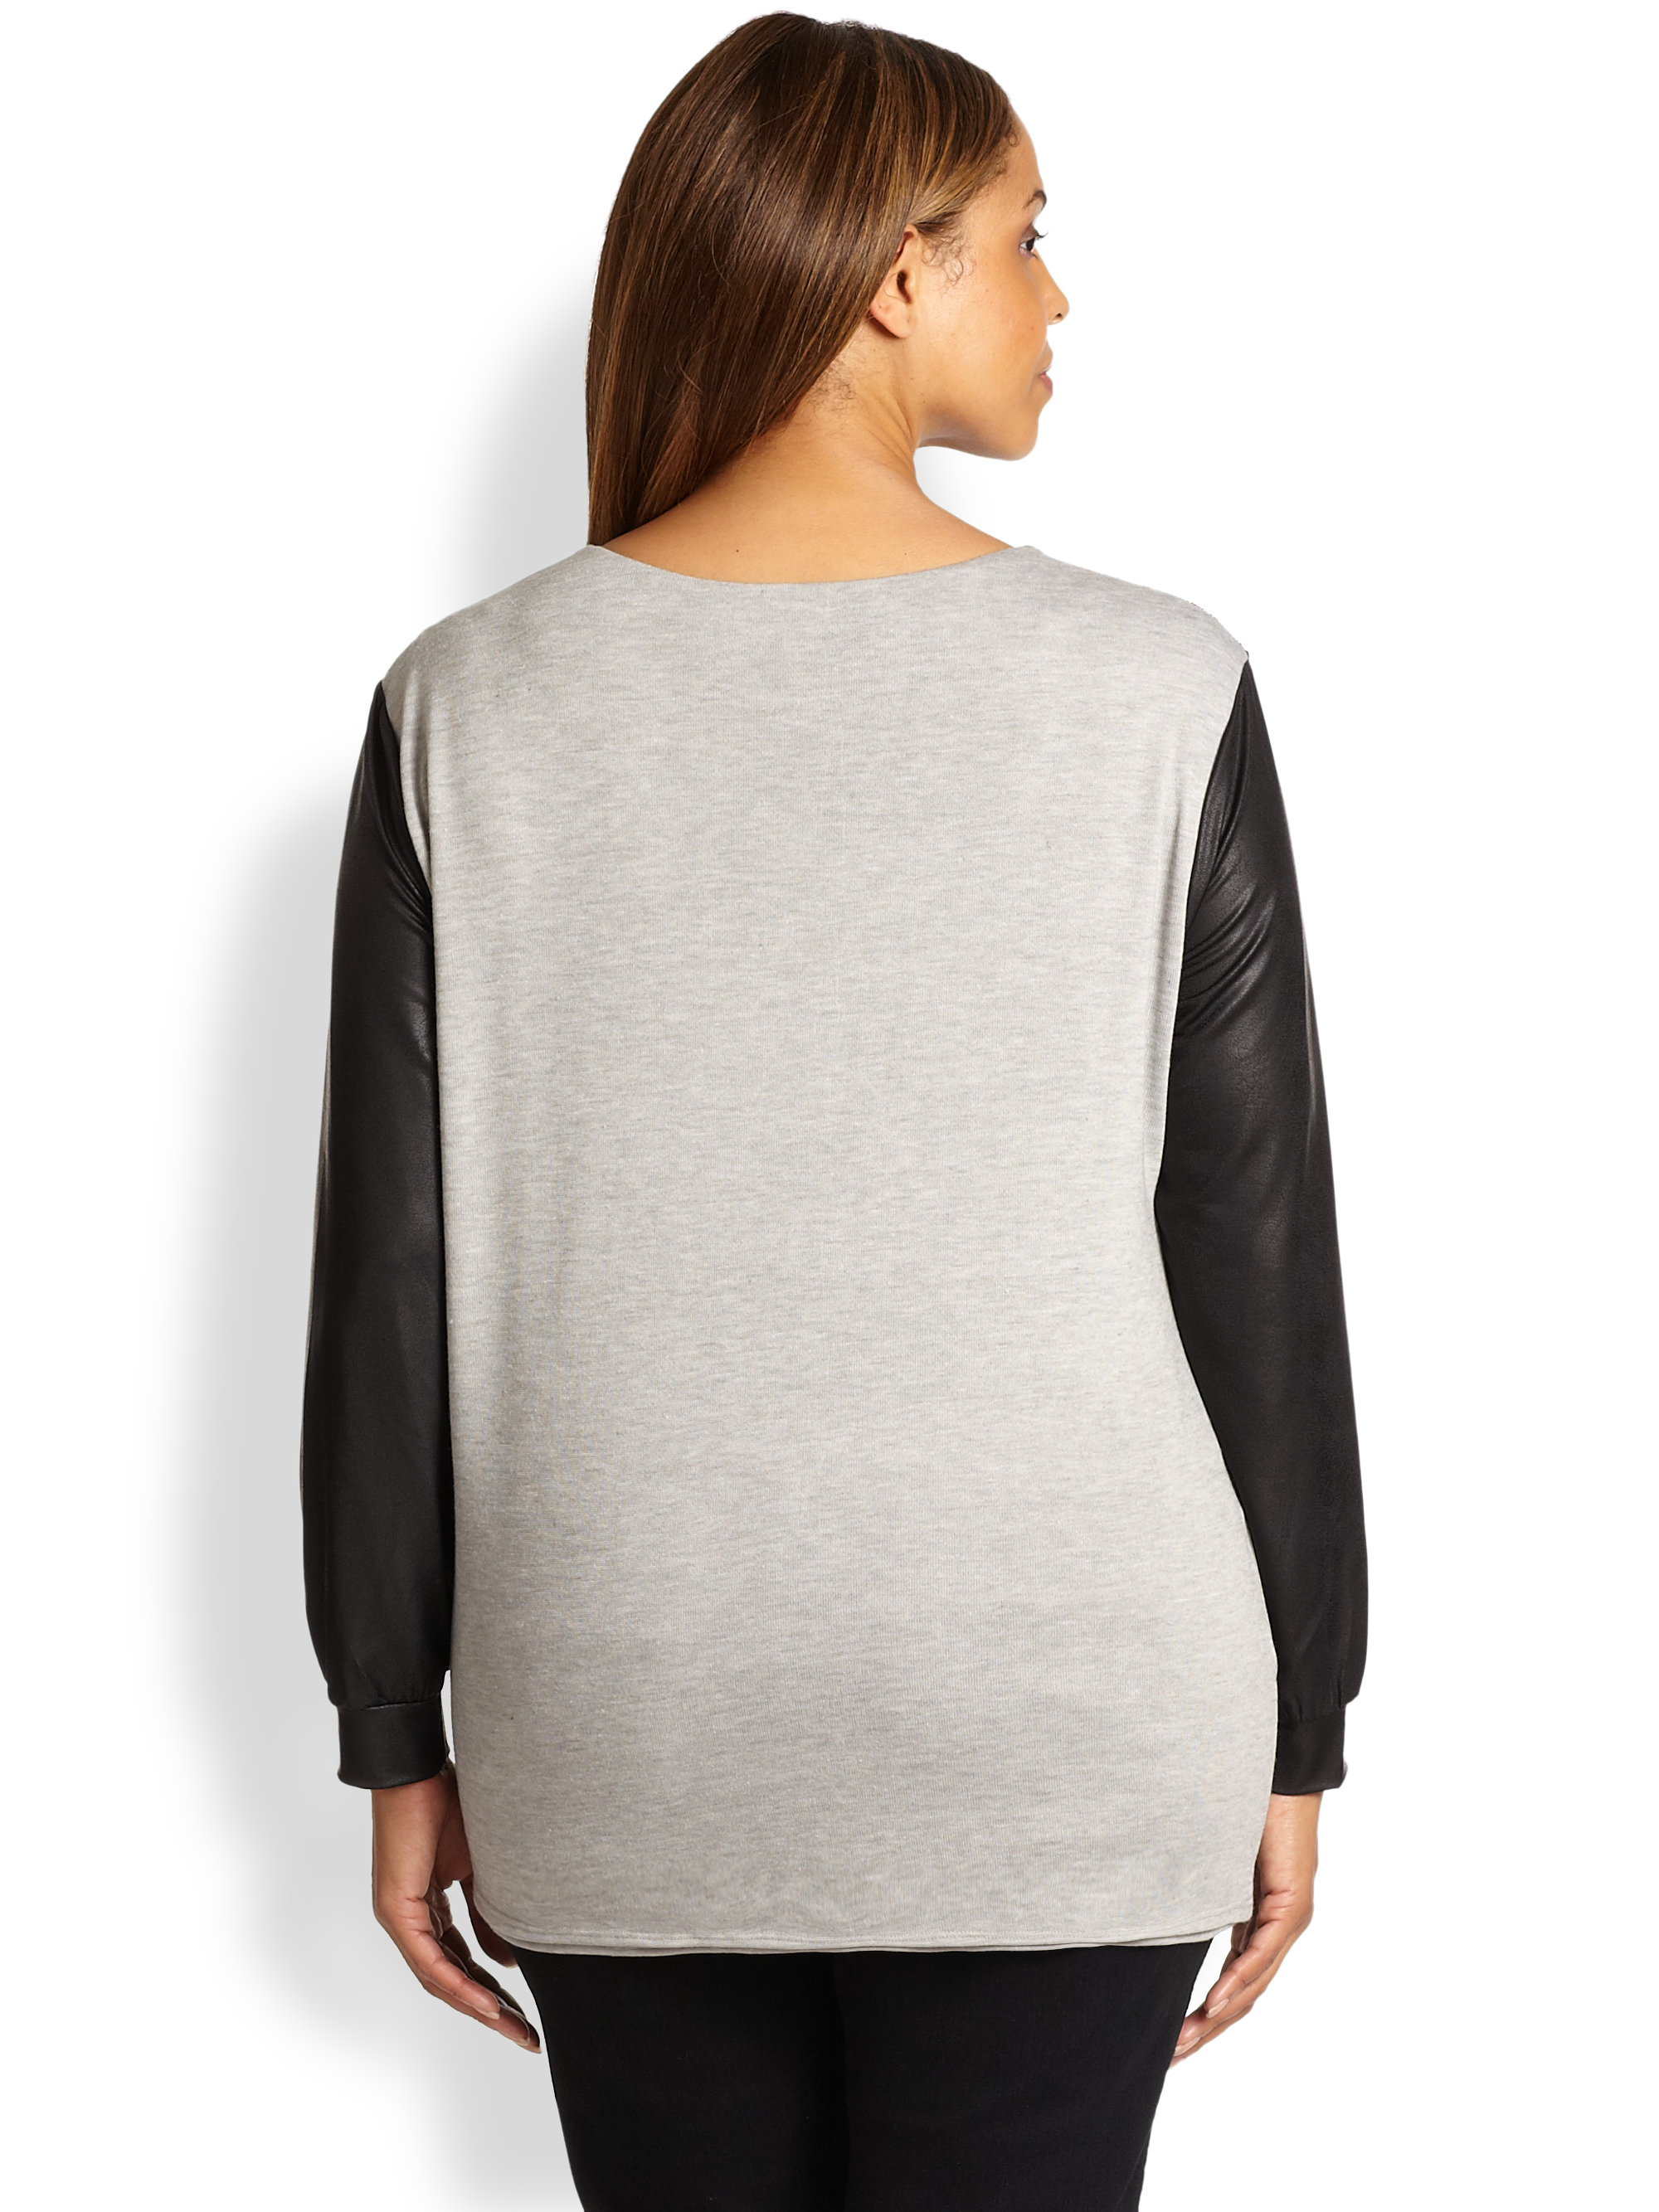 Lyst t bags beaded faux leathersleeve sweater in gray for Define faux leather